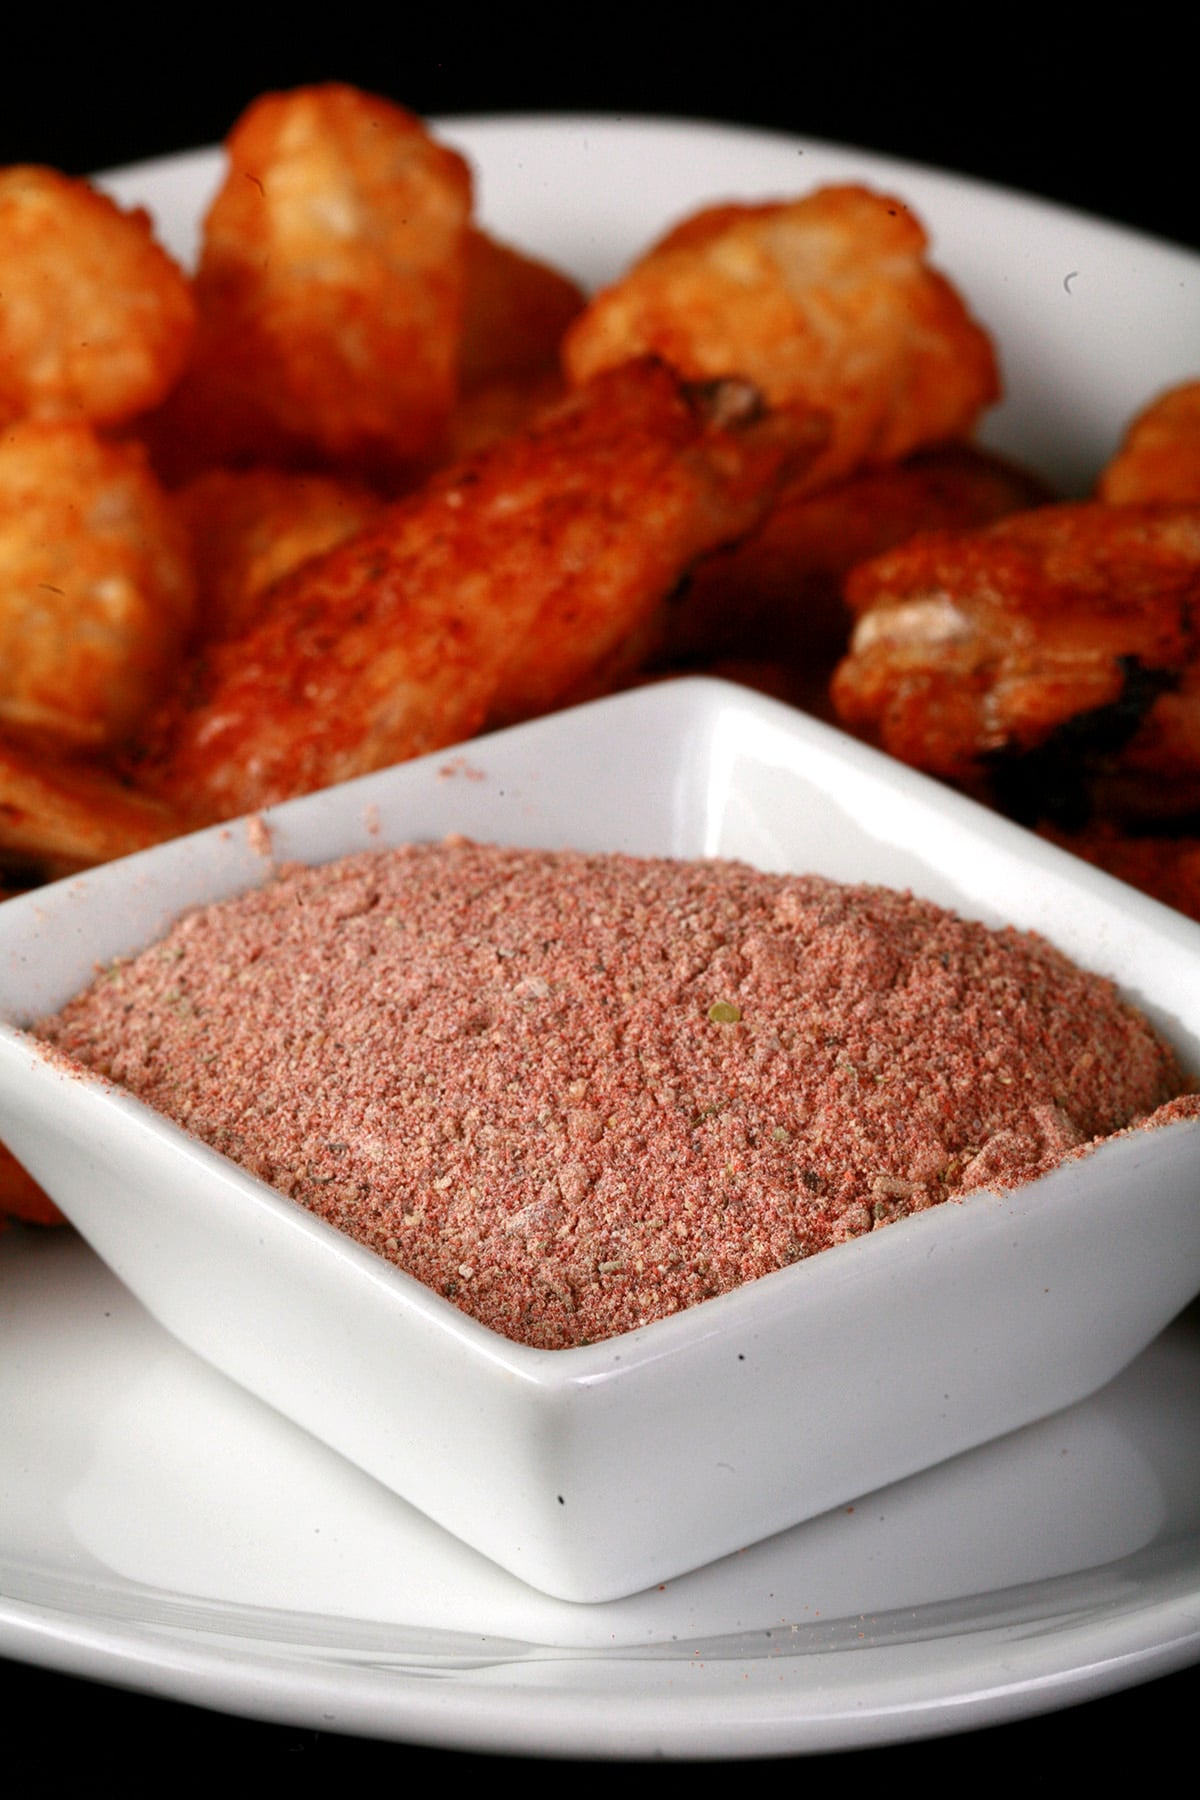 A small, square white bowl of a deep orange-red dry rub, on a larger plate of wings and tater tots. The wings are coated in the same red dry rub.